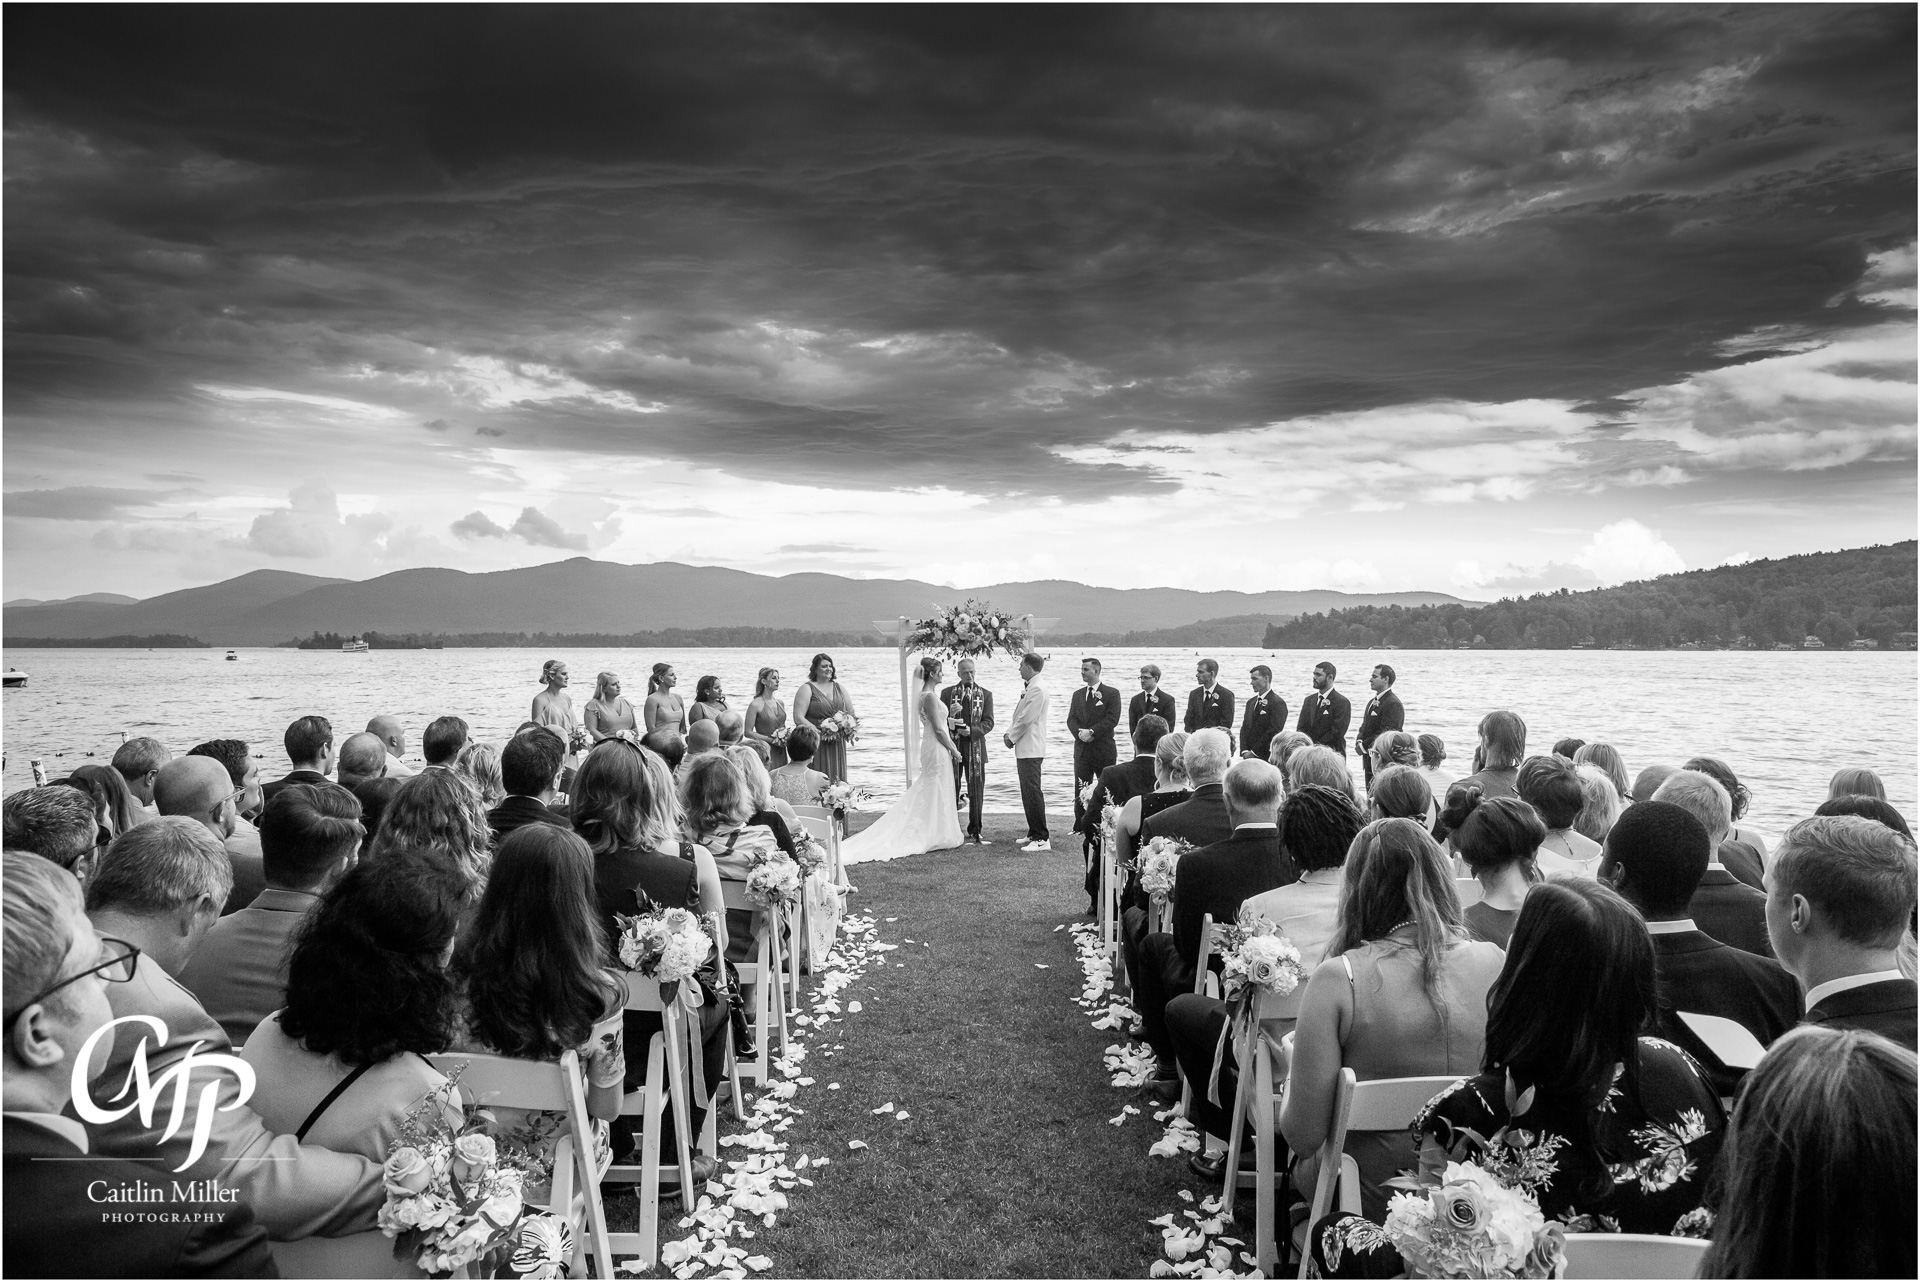 sale-12.jpg from Kendall and Chris's Lake George wedding at the Inn at Erlowest by Saratoga Wedding Photographer Caitlin Miller Photography. Lake George Wedding Photographer. Adirondack wedding photographer. Albany wedding photographer. Lake Placid Wedding Photographer. Saratoga Wedding Photographer